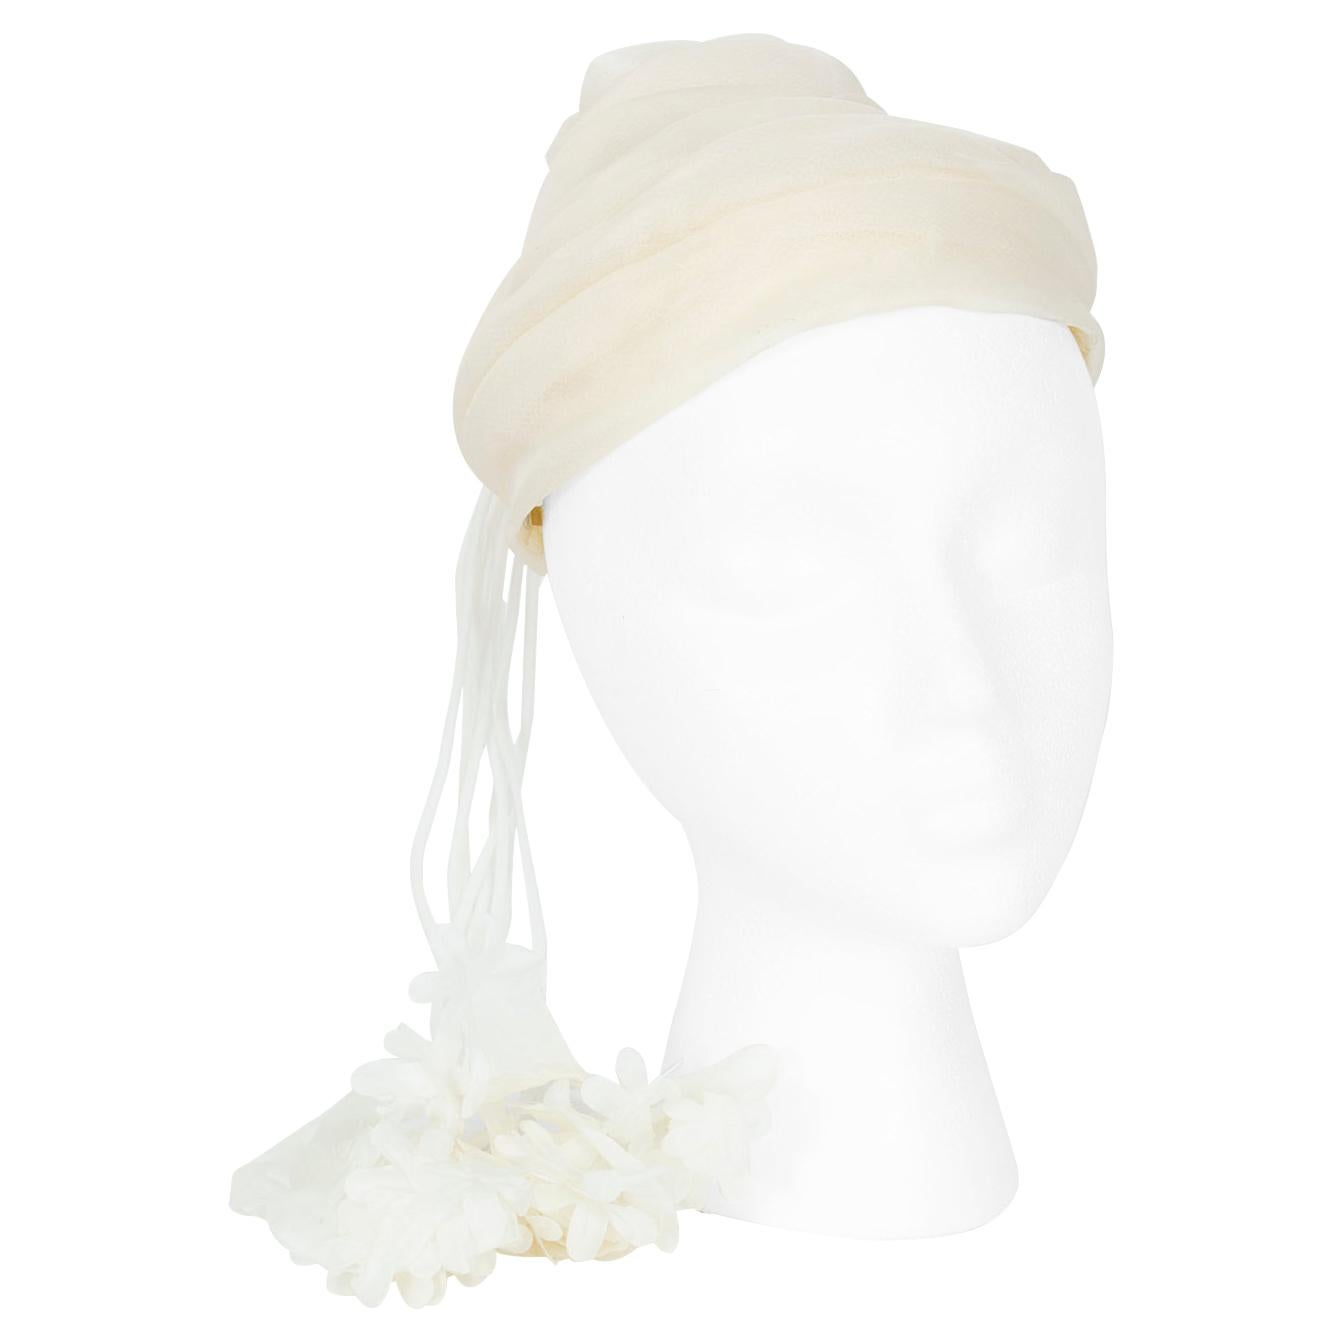 Ivory Chiffon Peaked Wedding Cocktail Twist Cap with Floral Tassels - S-M, 1950s